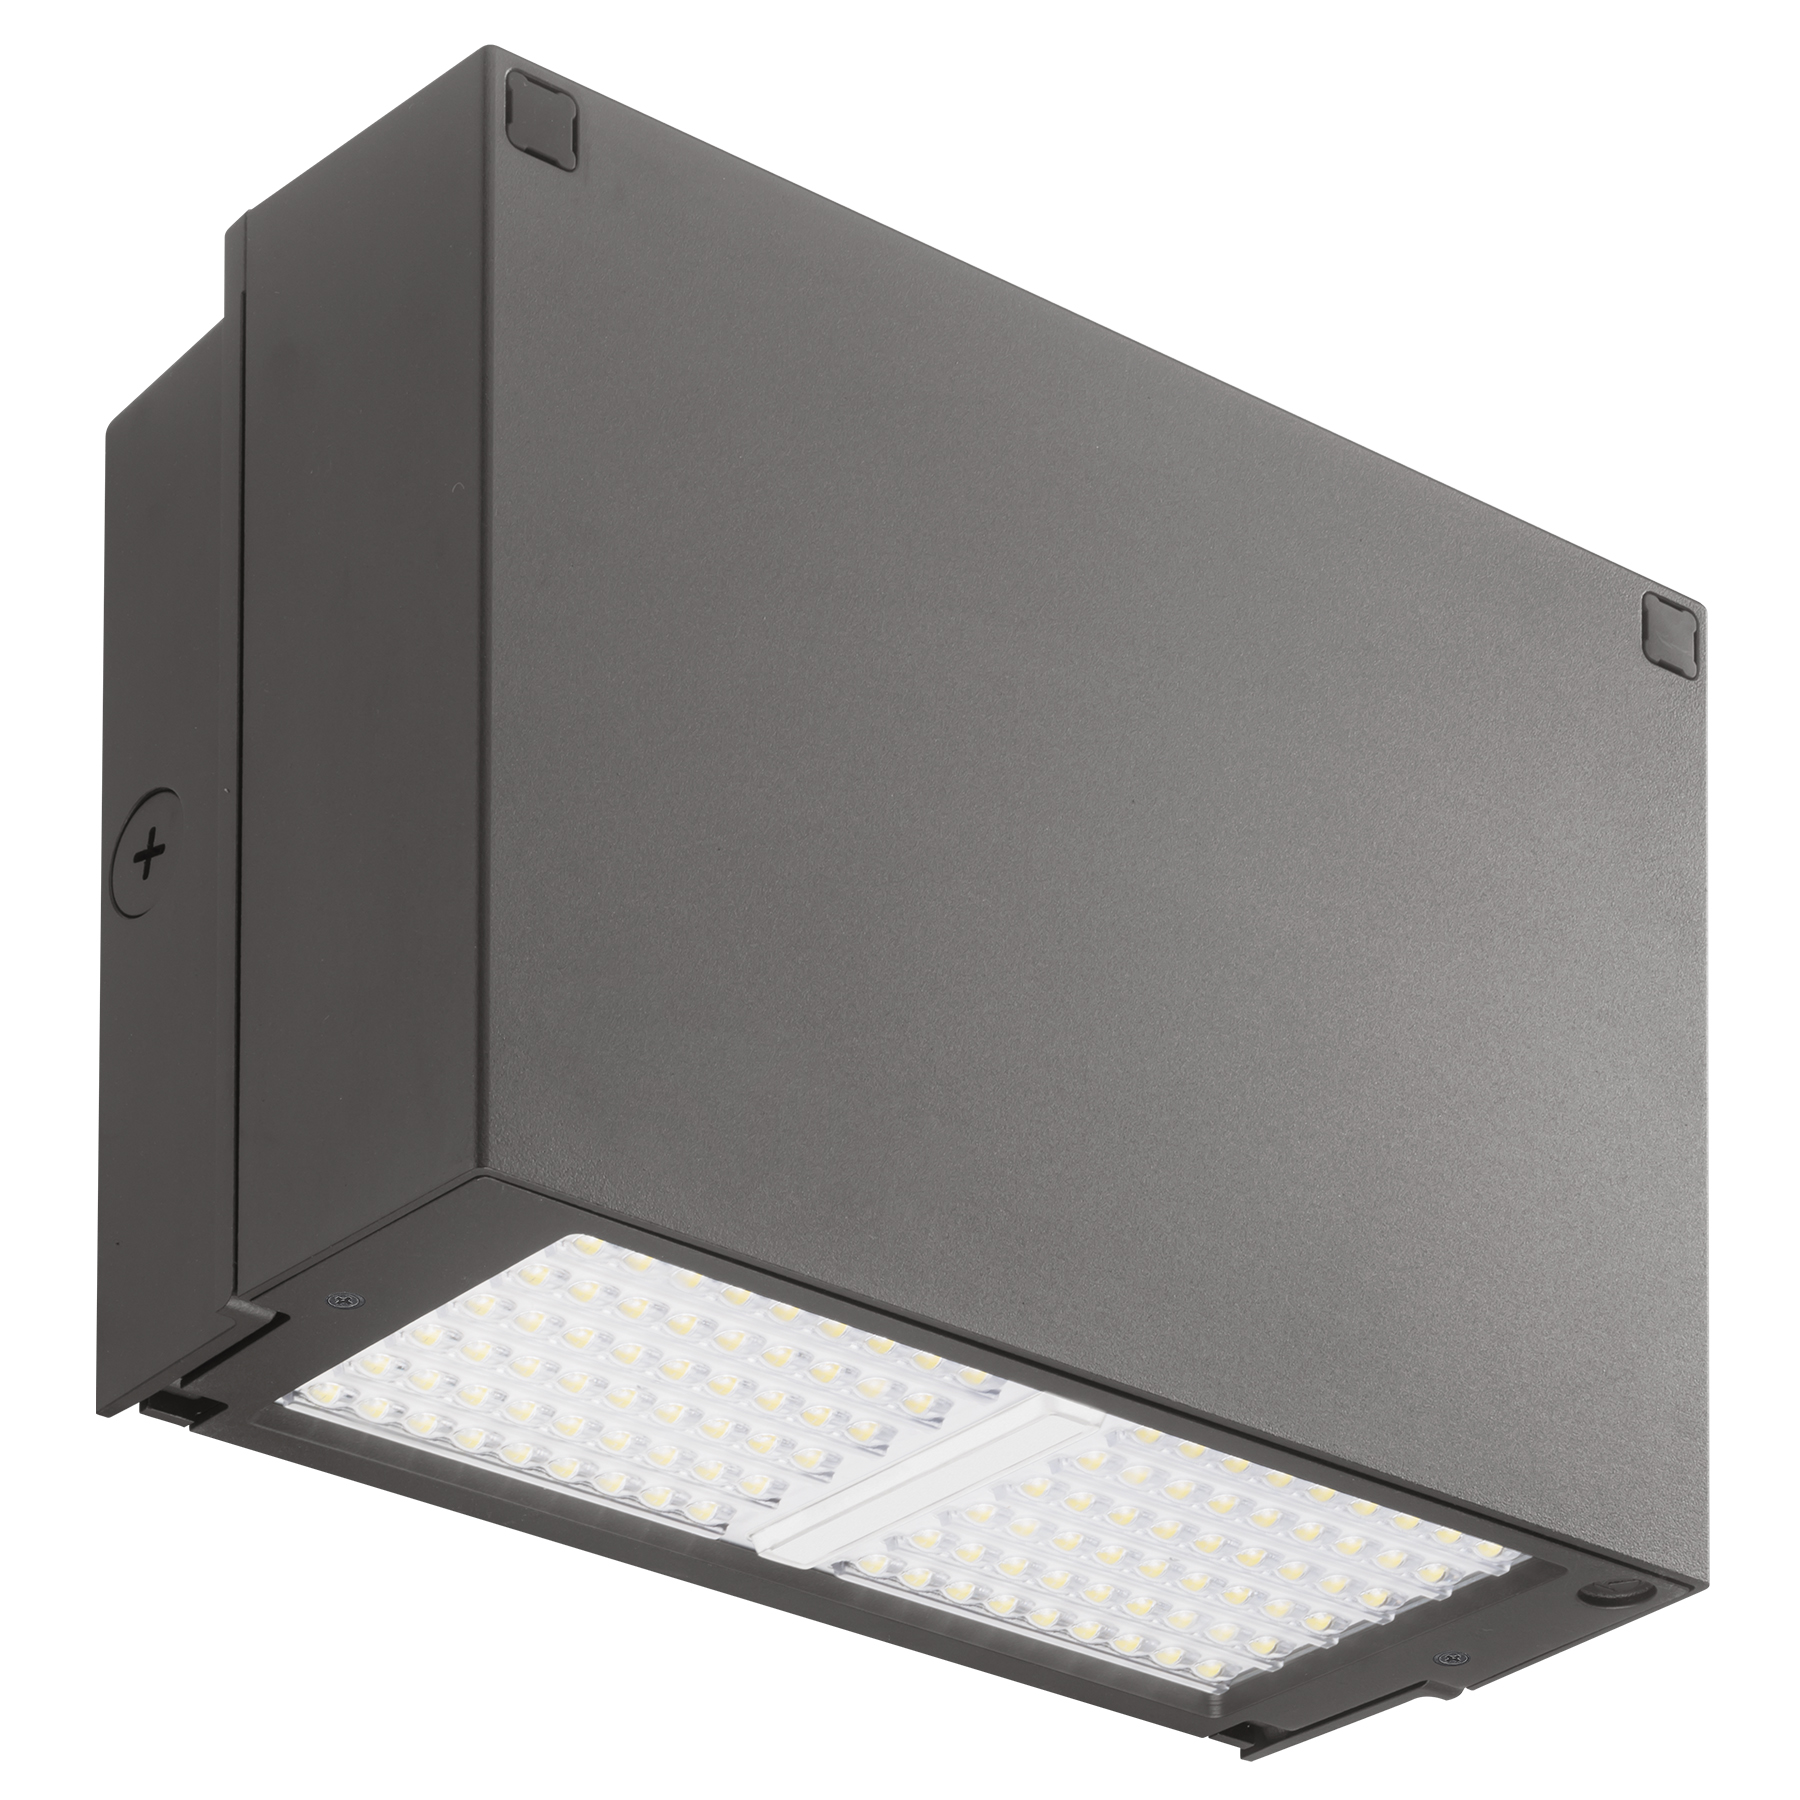 WPX3 LED Wall Mount